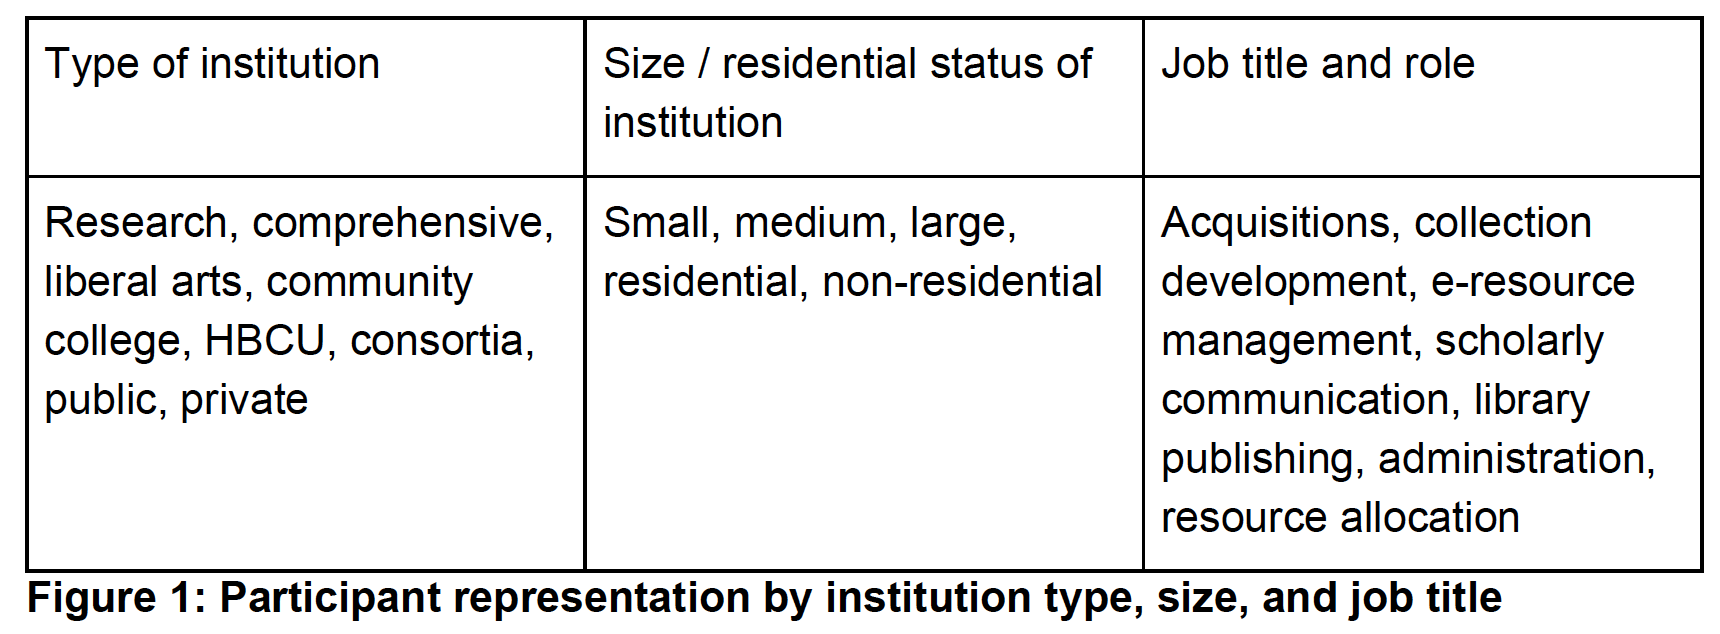 Figure 1 shows participant representation by institution type and size and by job title